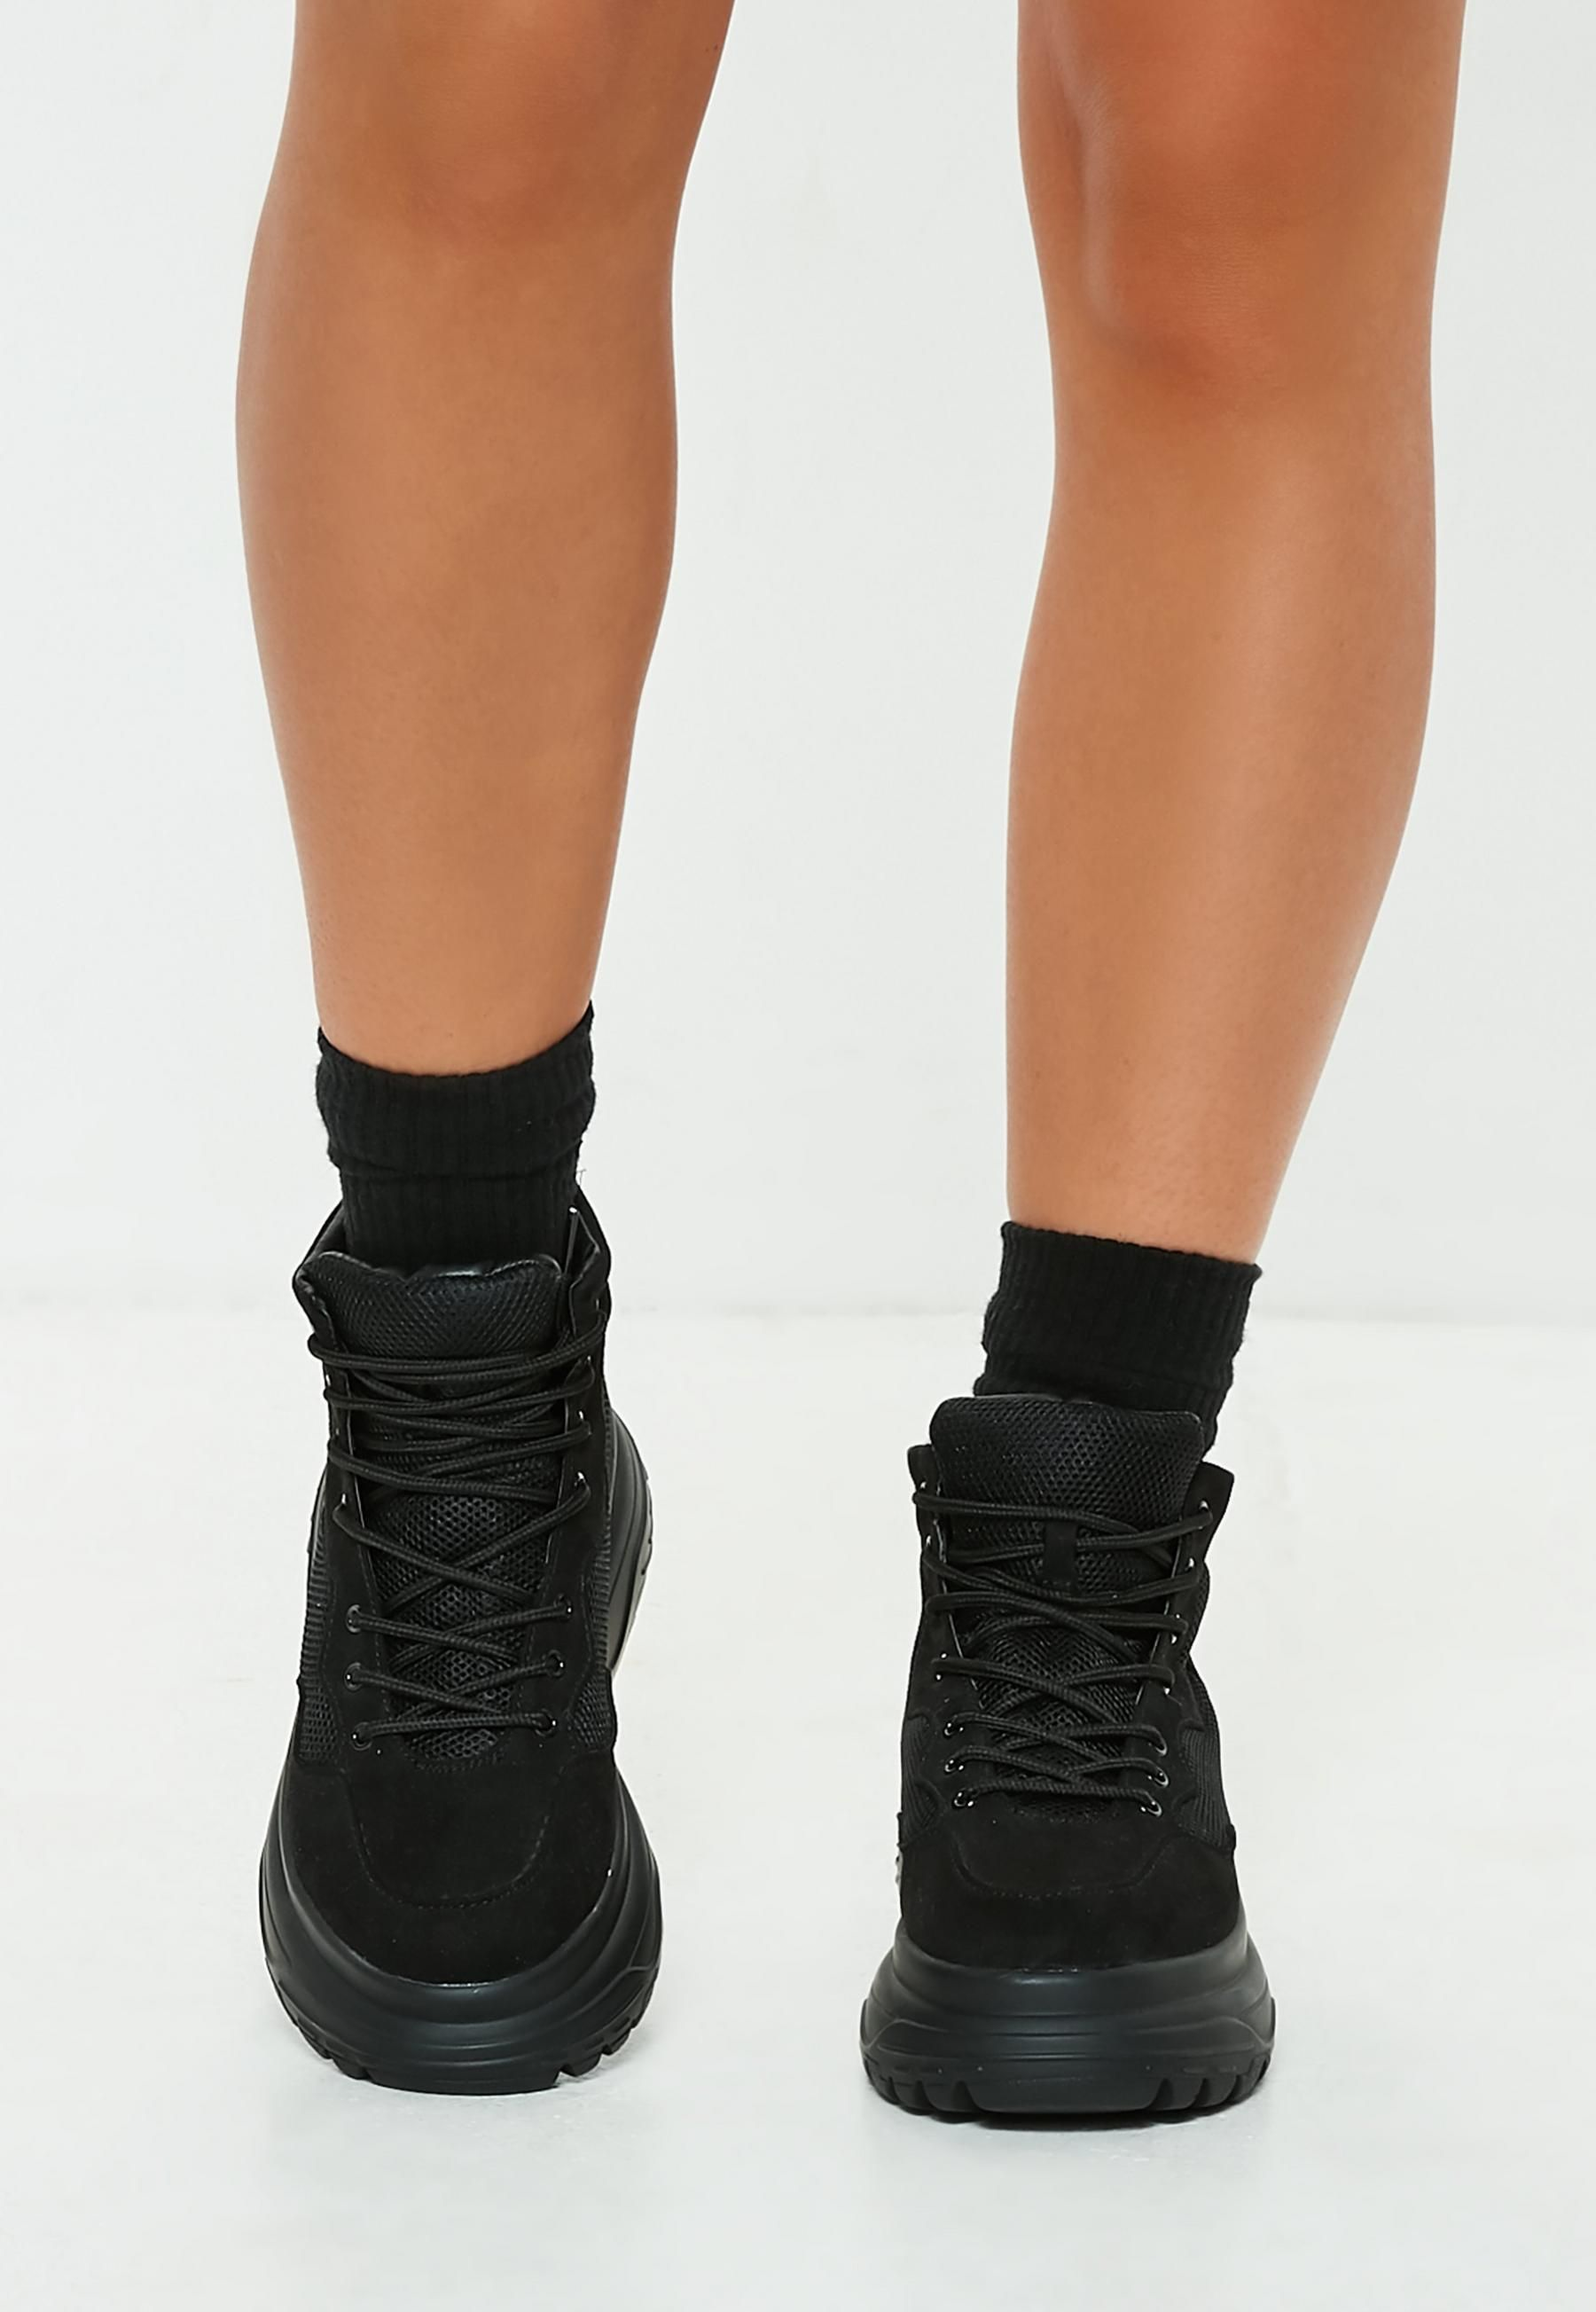 boots with sneaker soles